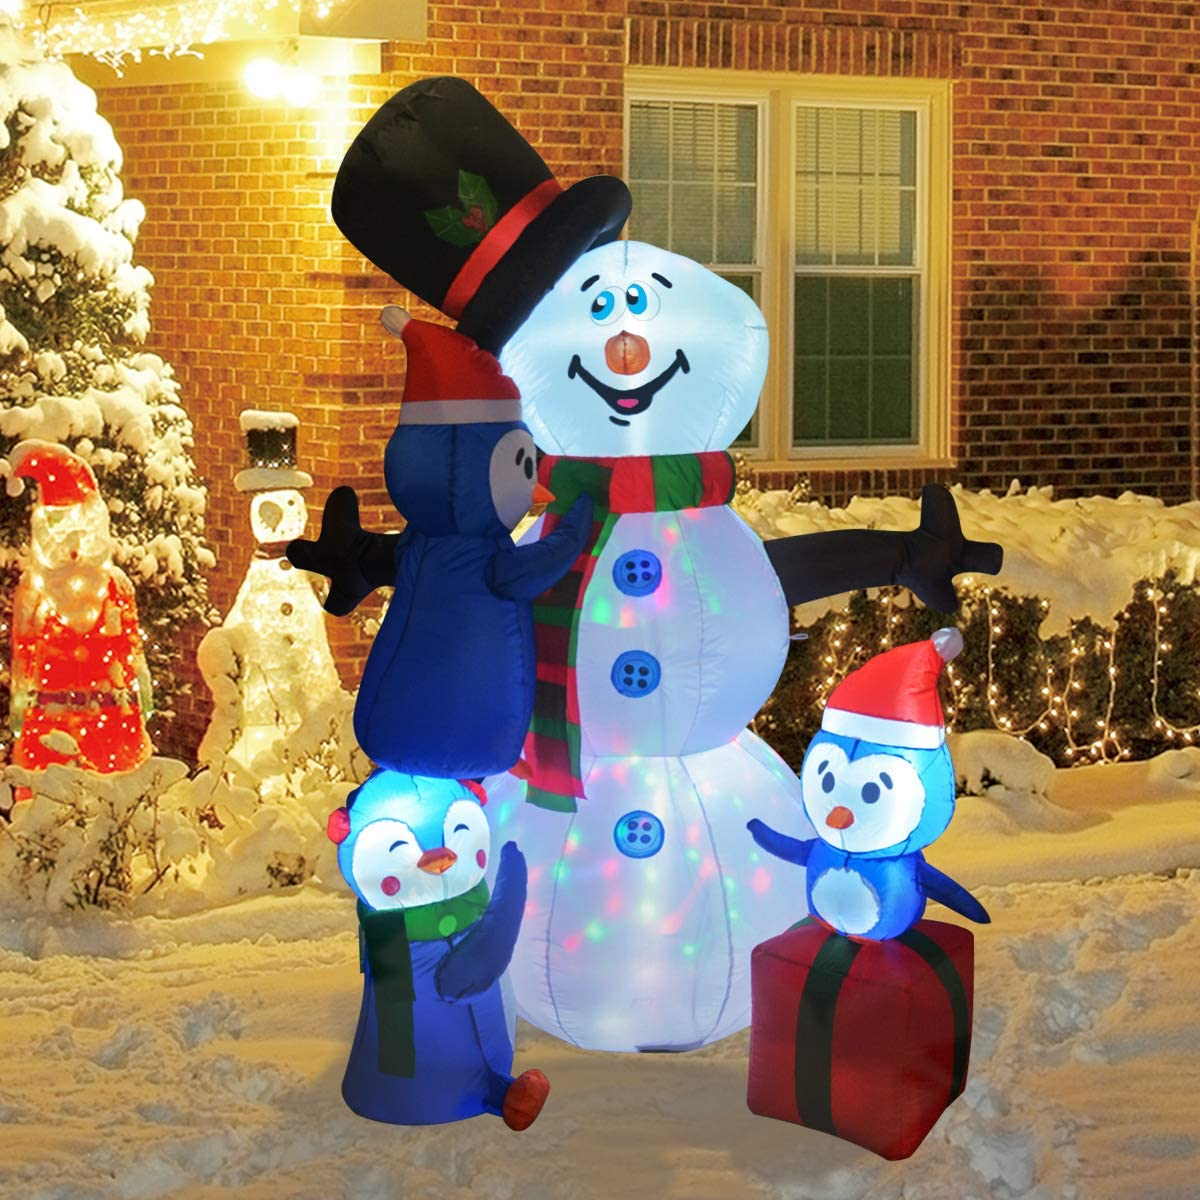 GOOSH Christmas Inflatable Snowman with Branch Hand LED Lights Indoor-Outdoor Yard Lawn Decoration - Cute Fun Xmas Holiday Blow Up Party Display (6 Foot Tall Inflatable Snowman Penguin)